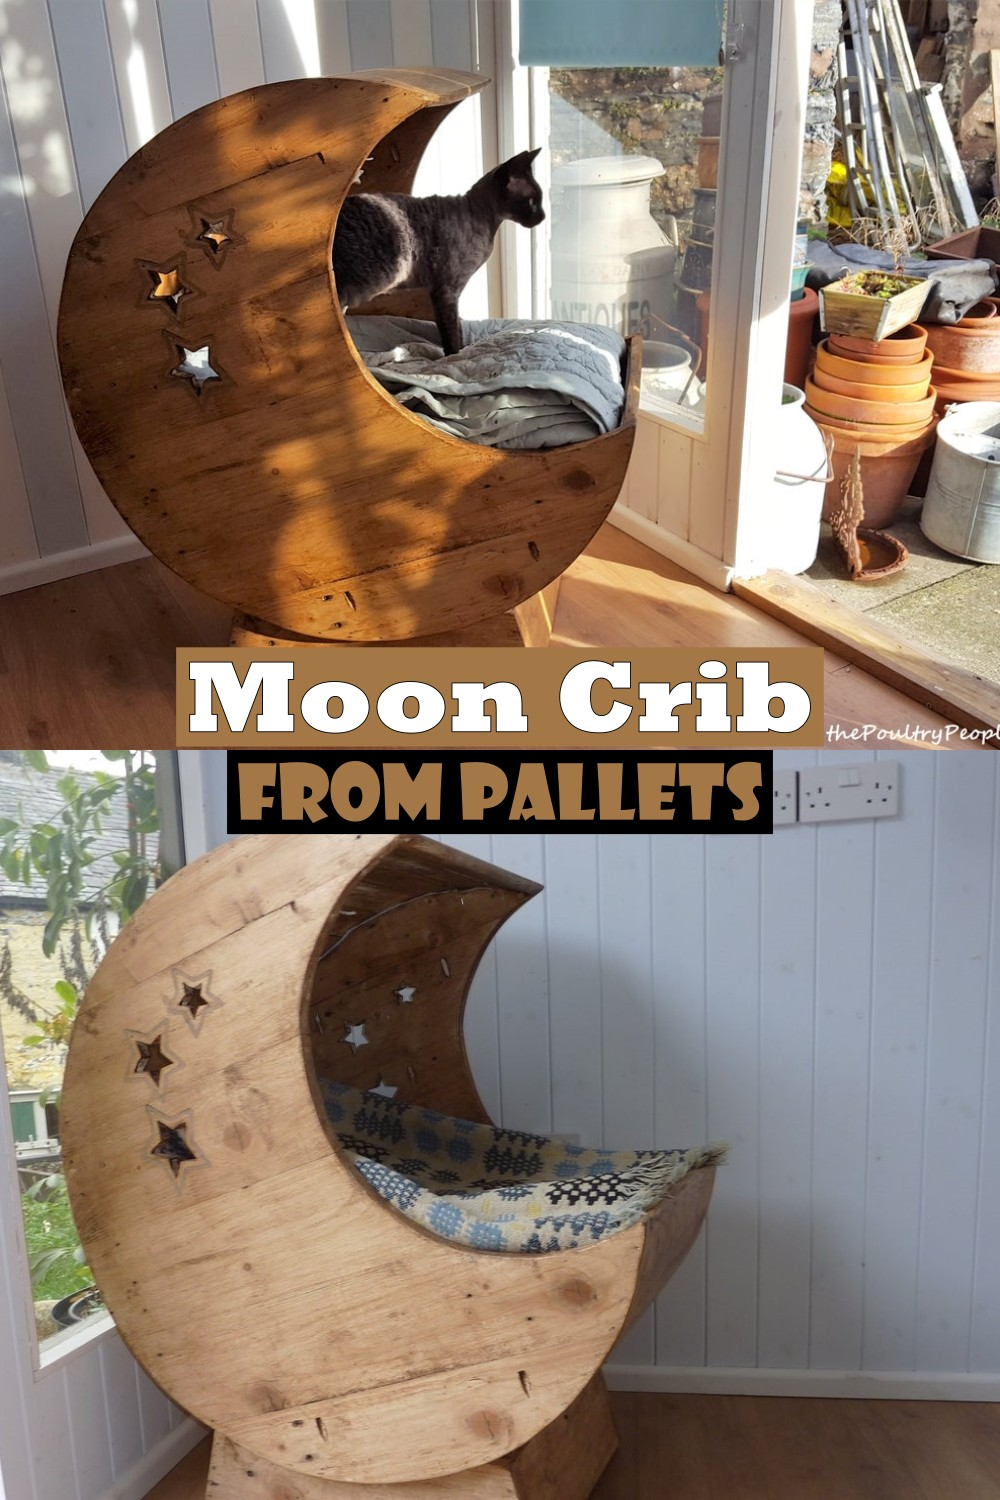 Moon Crib From Pallets